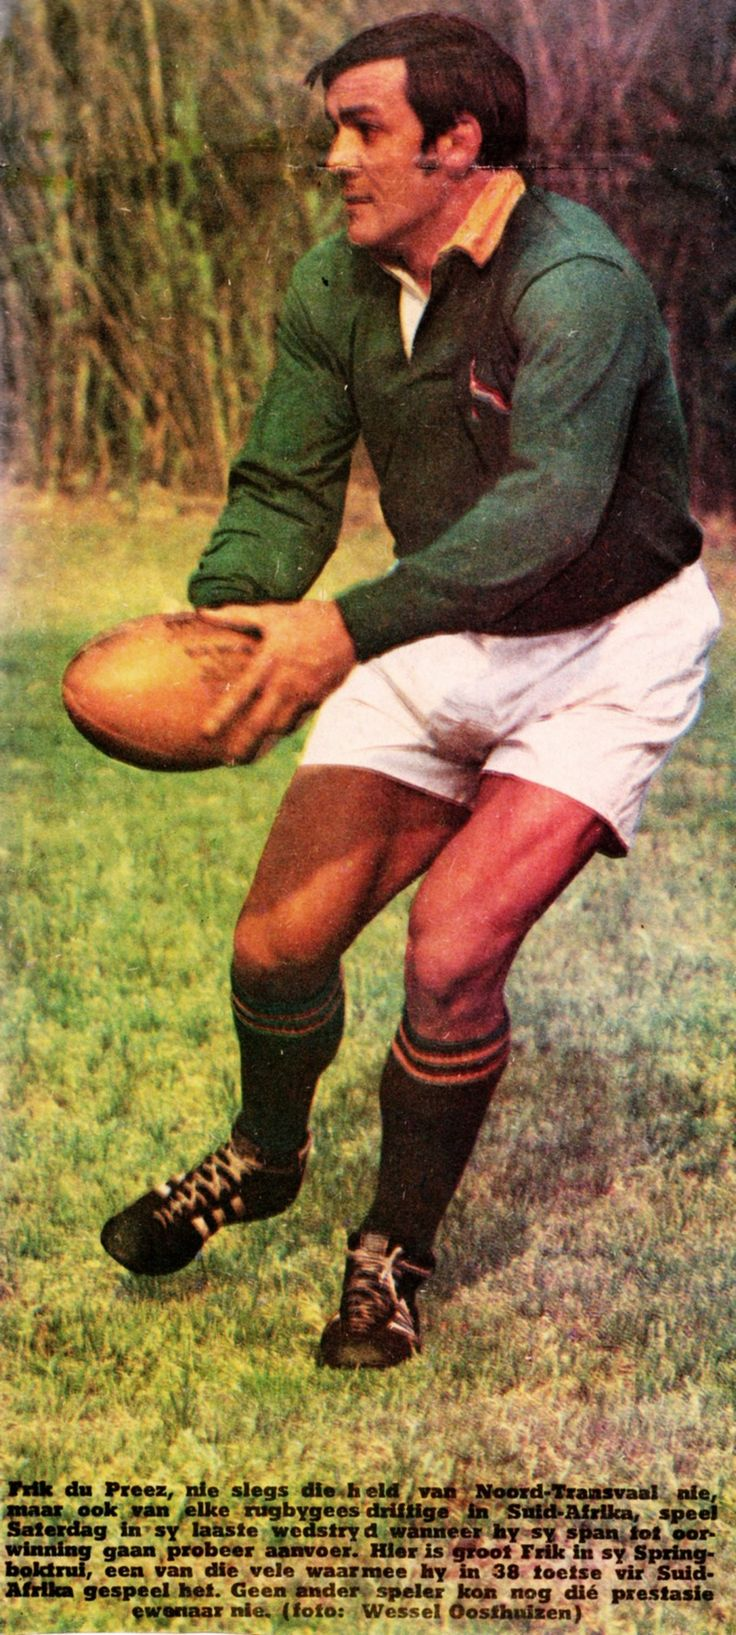 Frik du Preez (Slot) - 1971 (Mclook rugby collection)